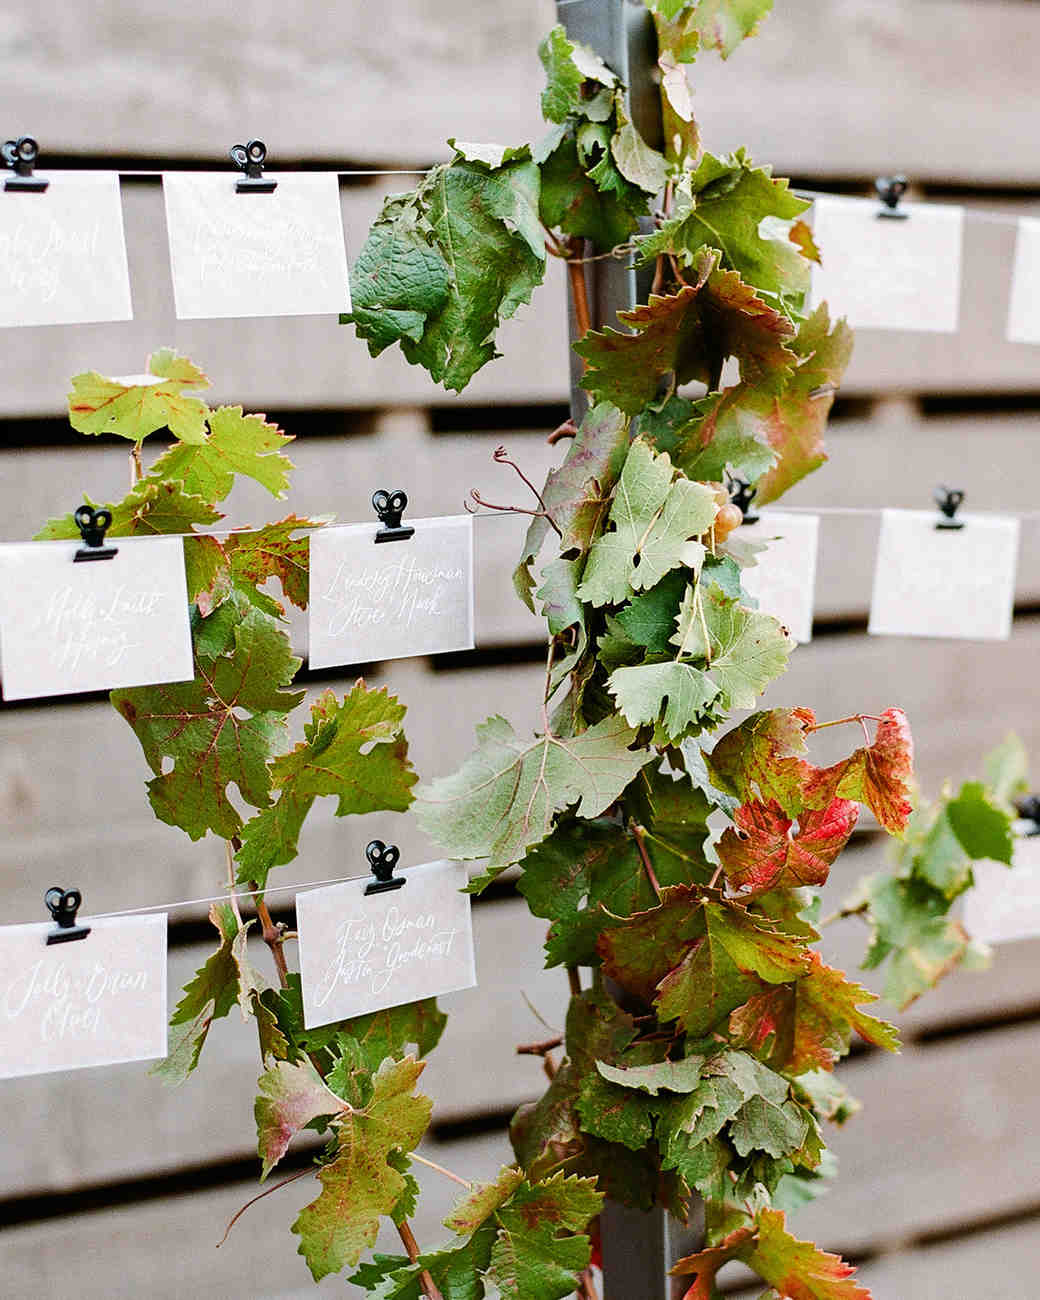 cristina chris wedding escort cards on lines with fall leaves